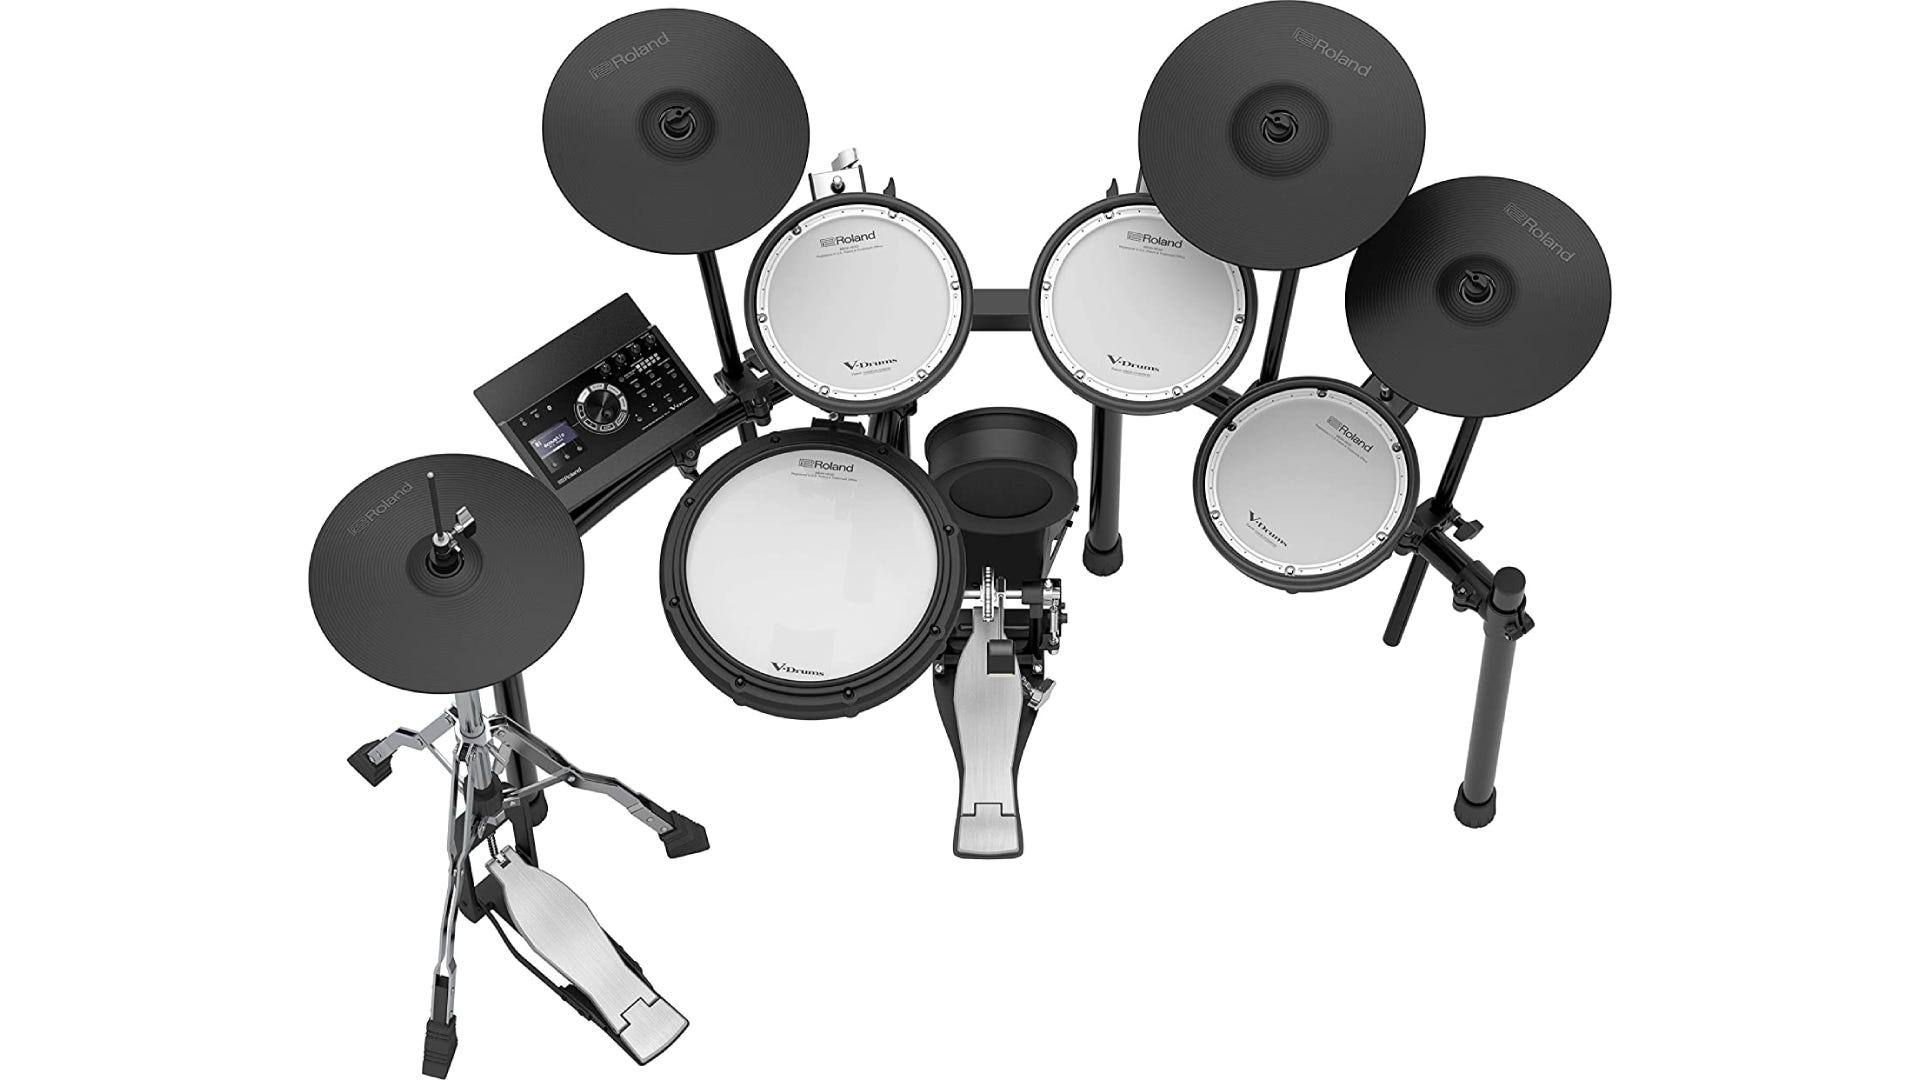 A over-head view of an electronic drum kit with bass drum, kick pedals, snare drum, toms, and cymbals.